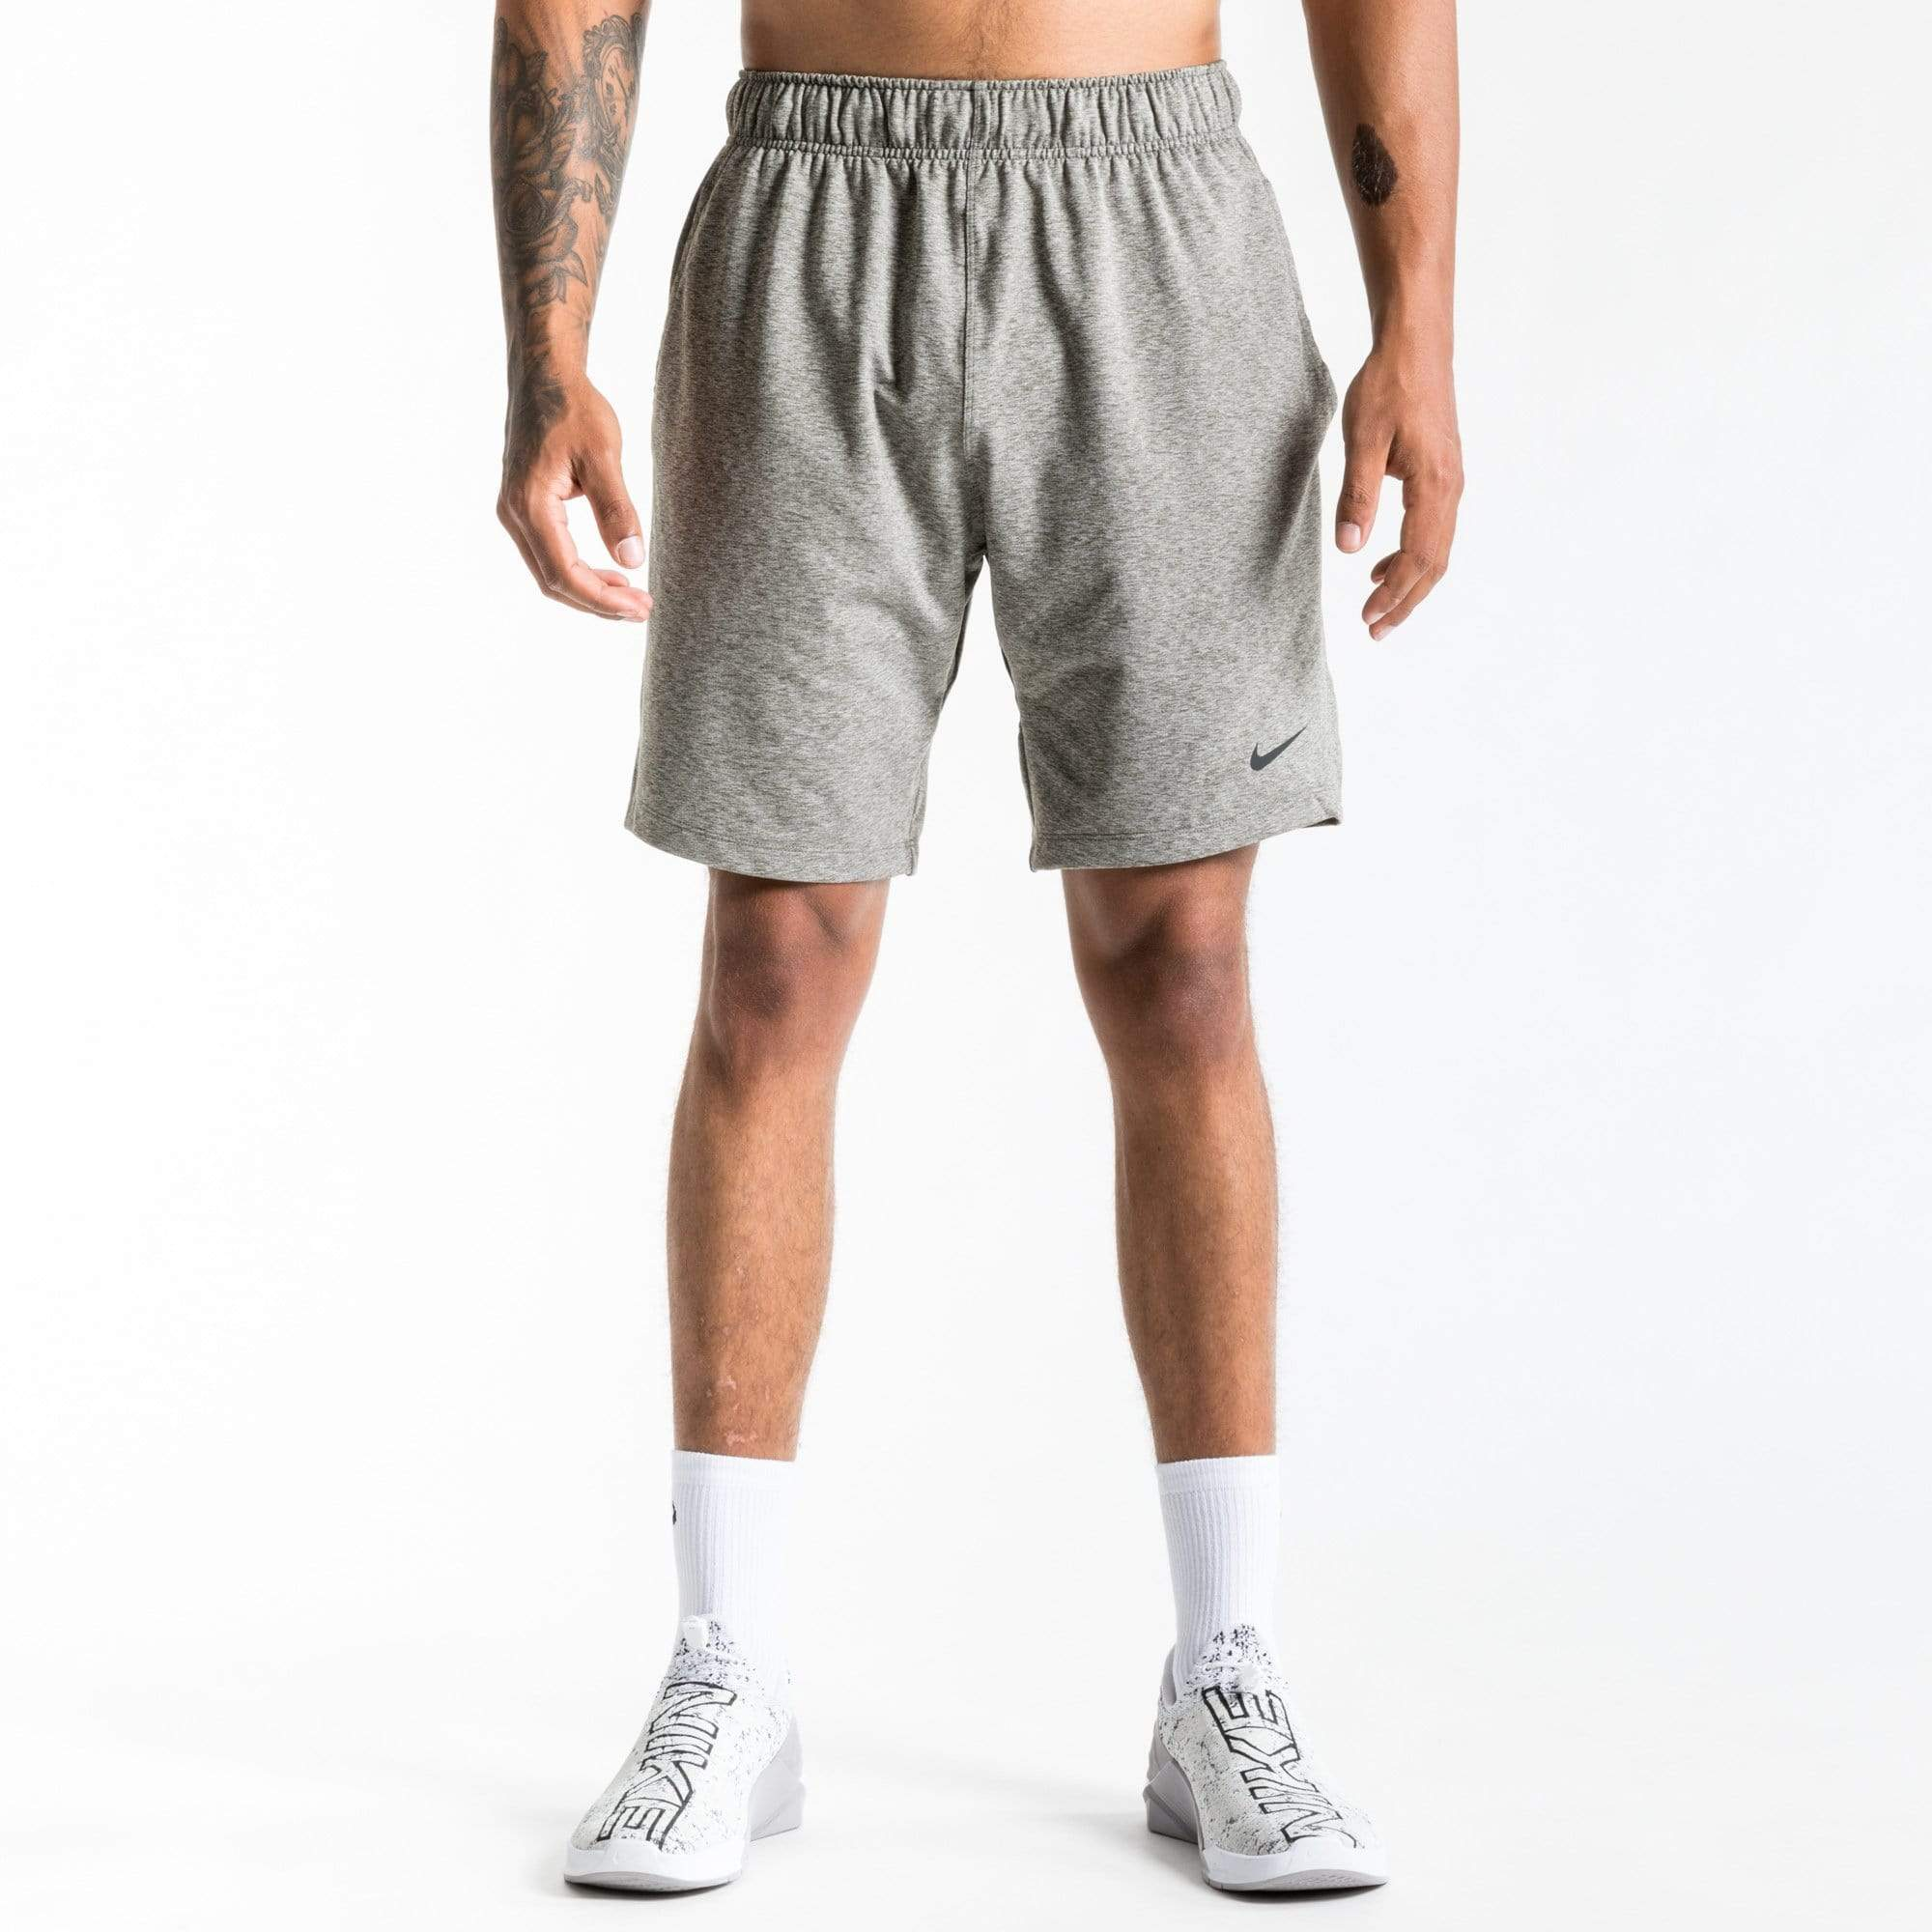 Nike Shorts Nike Dri-Fit Shorts